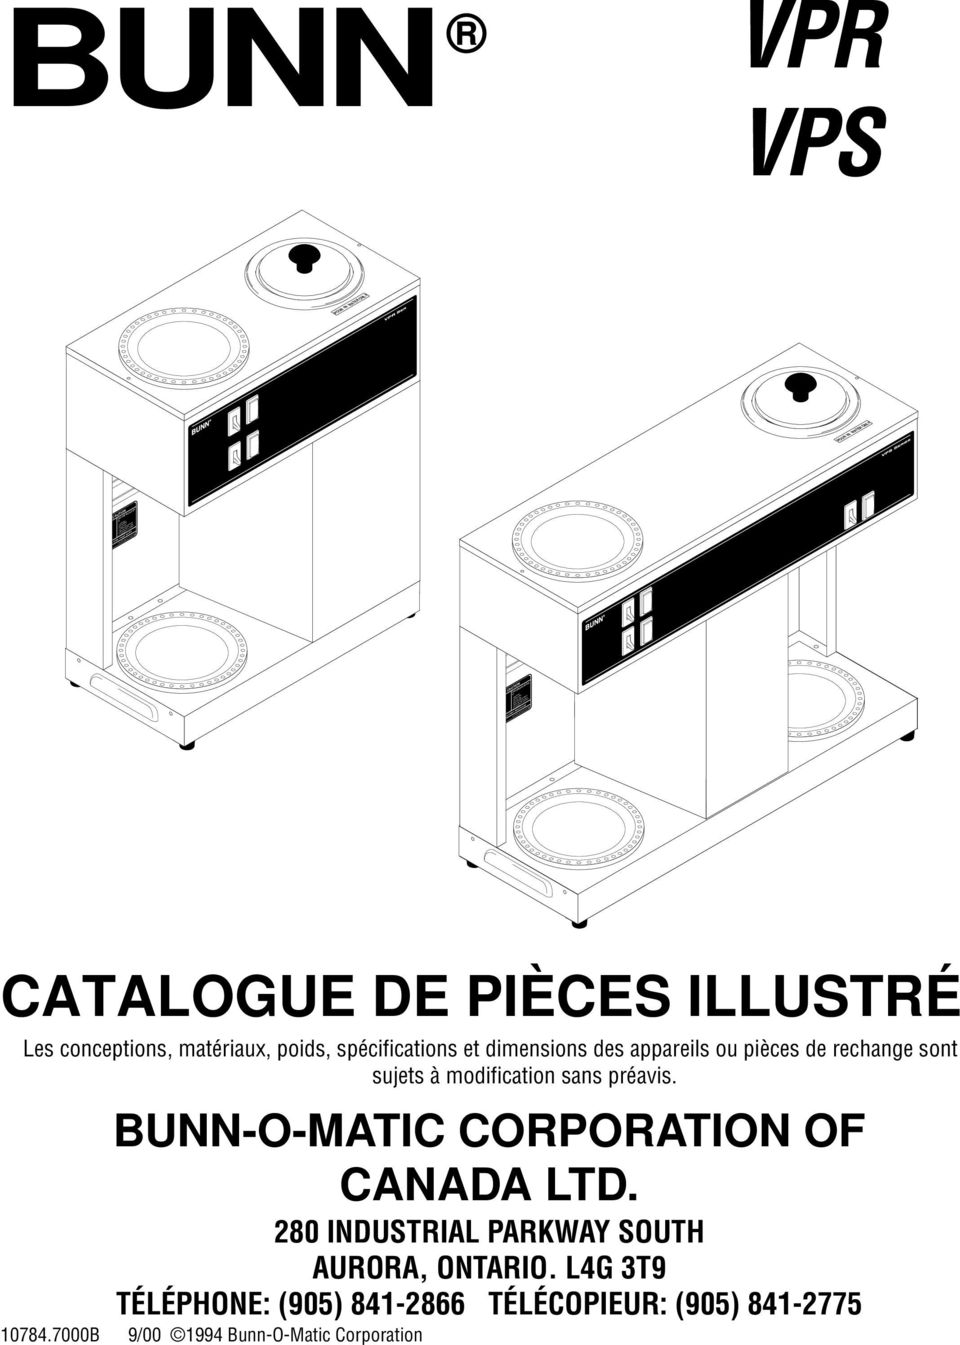 OR EXPOSED ELECTRIC ELEMENTS FAILURE TO COMPLY RISKS INJURY PN: 58 1985 BUNN-O-MATIC CORPORATION CATALOGUE DE PIÈCES ILLUSTRÉ Les conceptions, matériaux, poids, spécifications et dimensions des